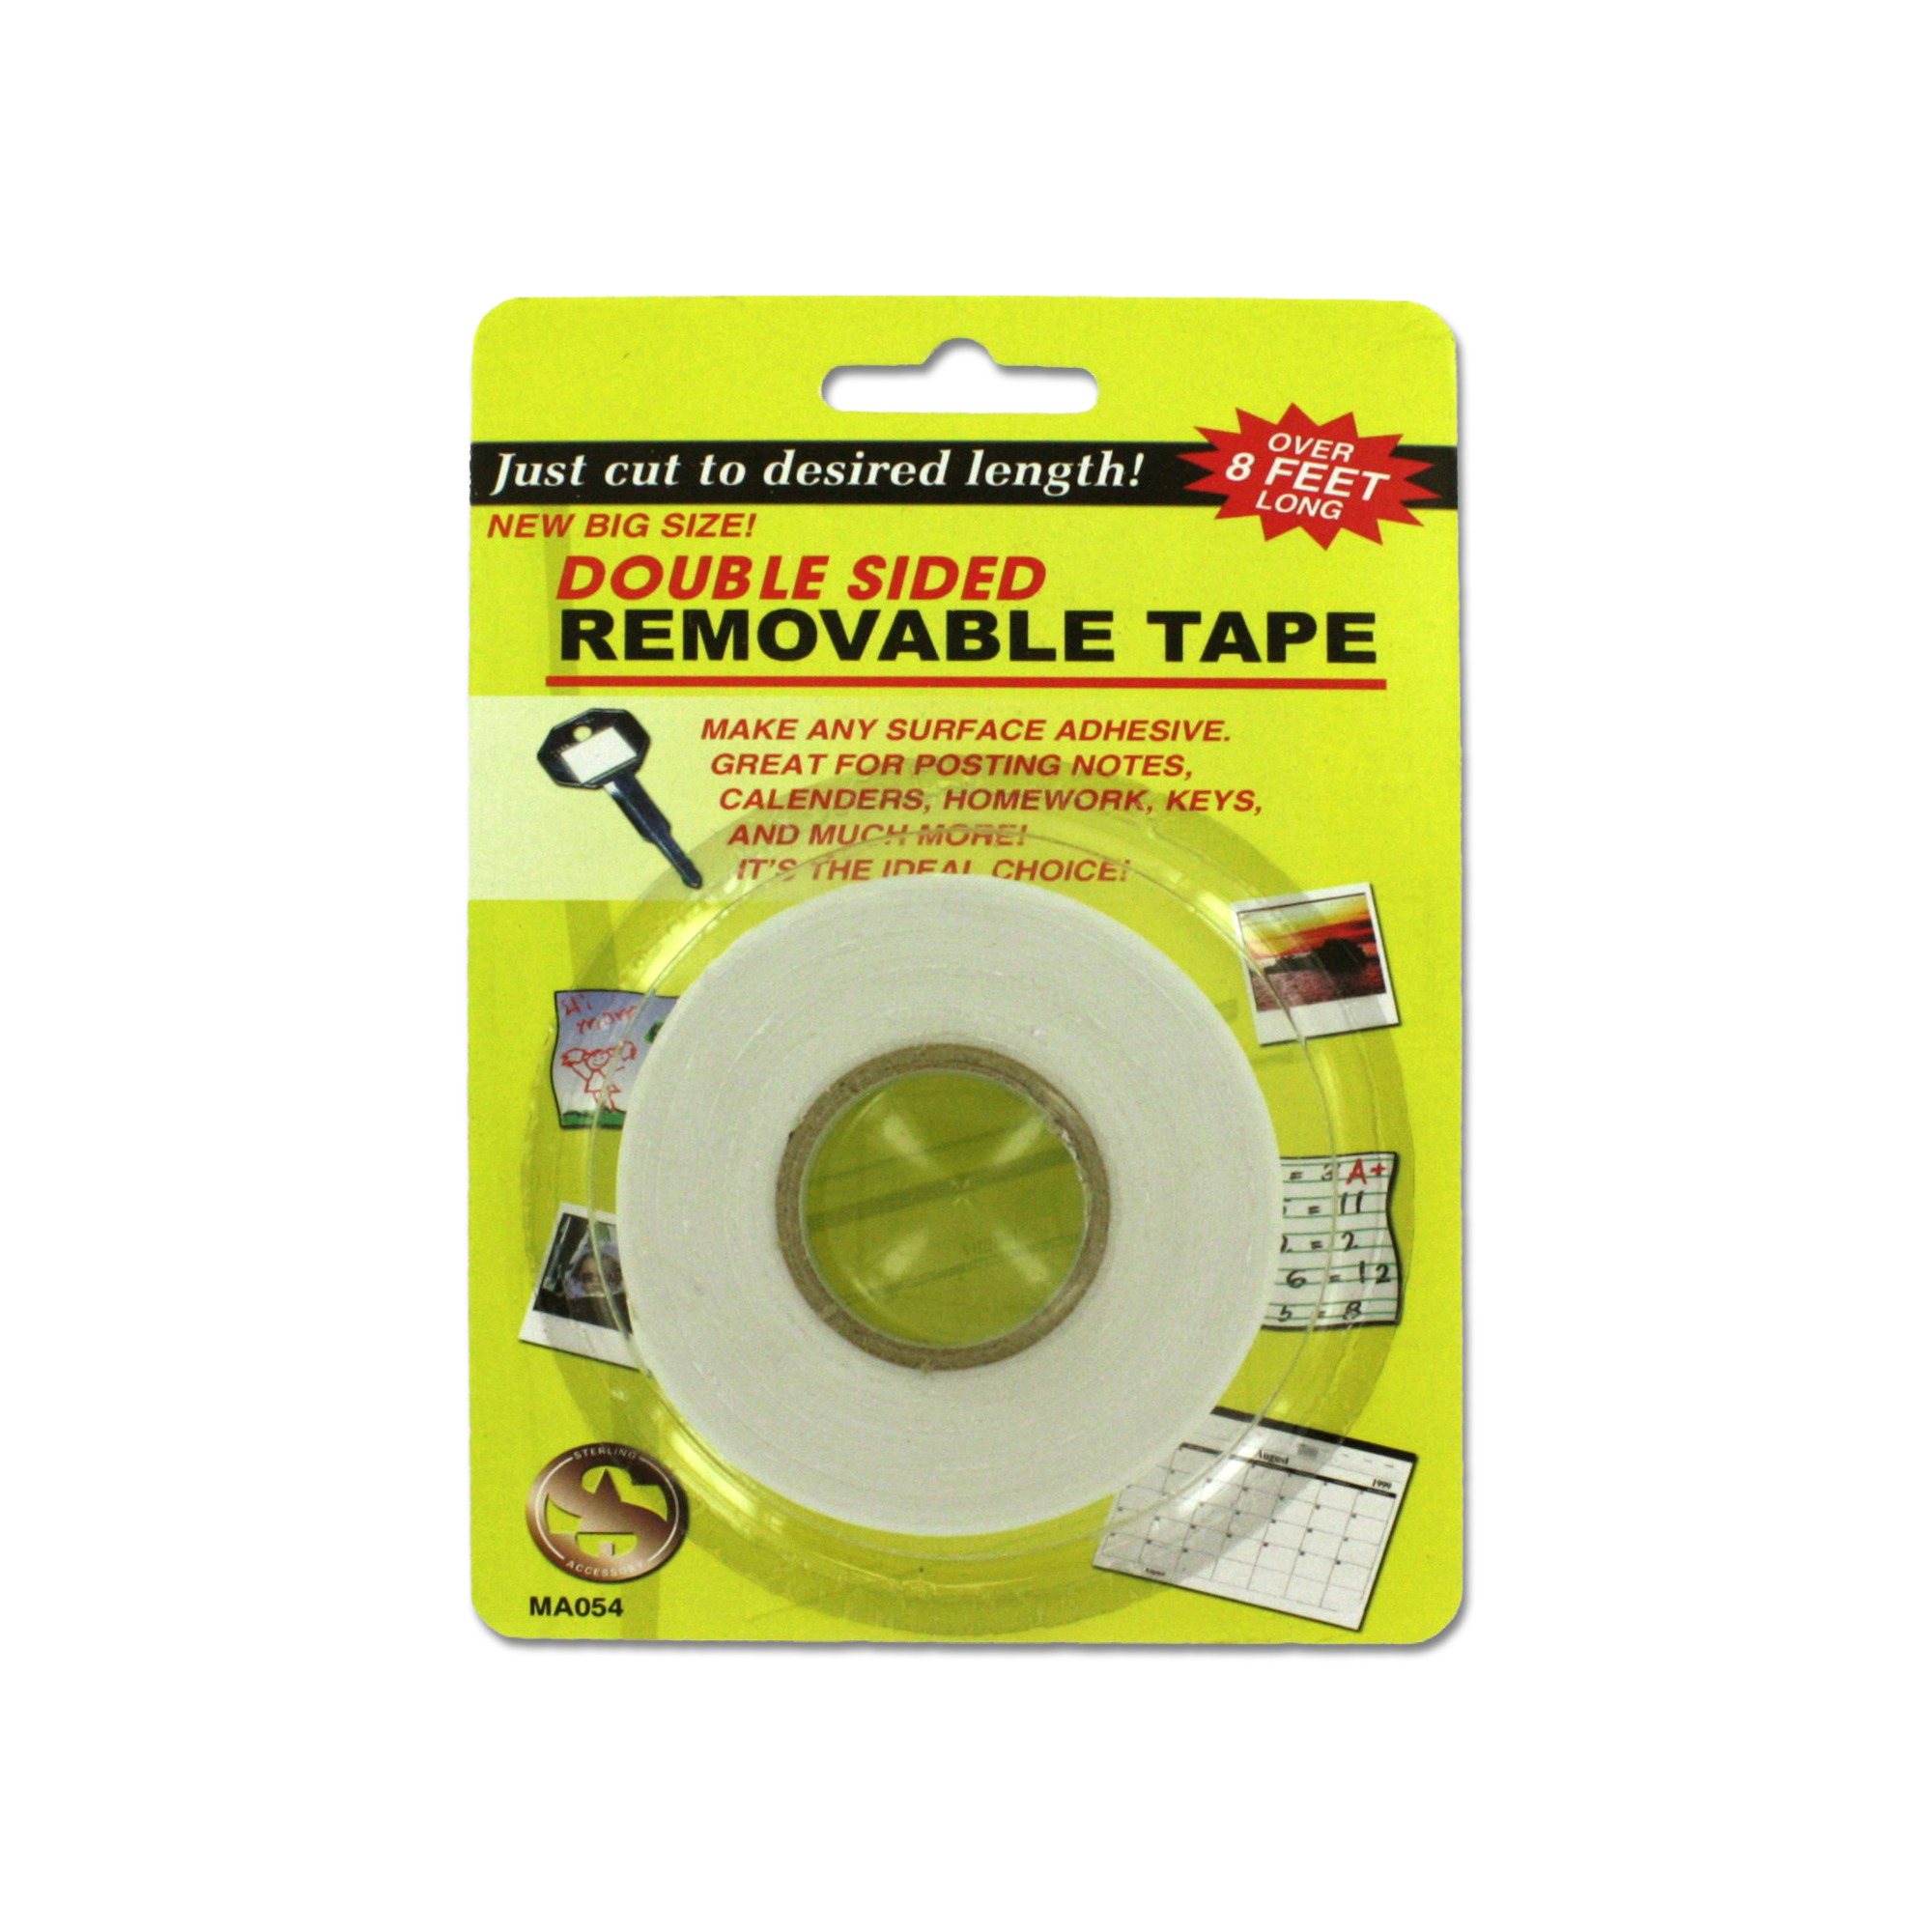 Wholesale Double Sided Removable Tape Bulk Buys